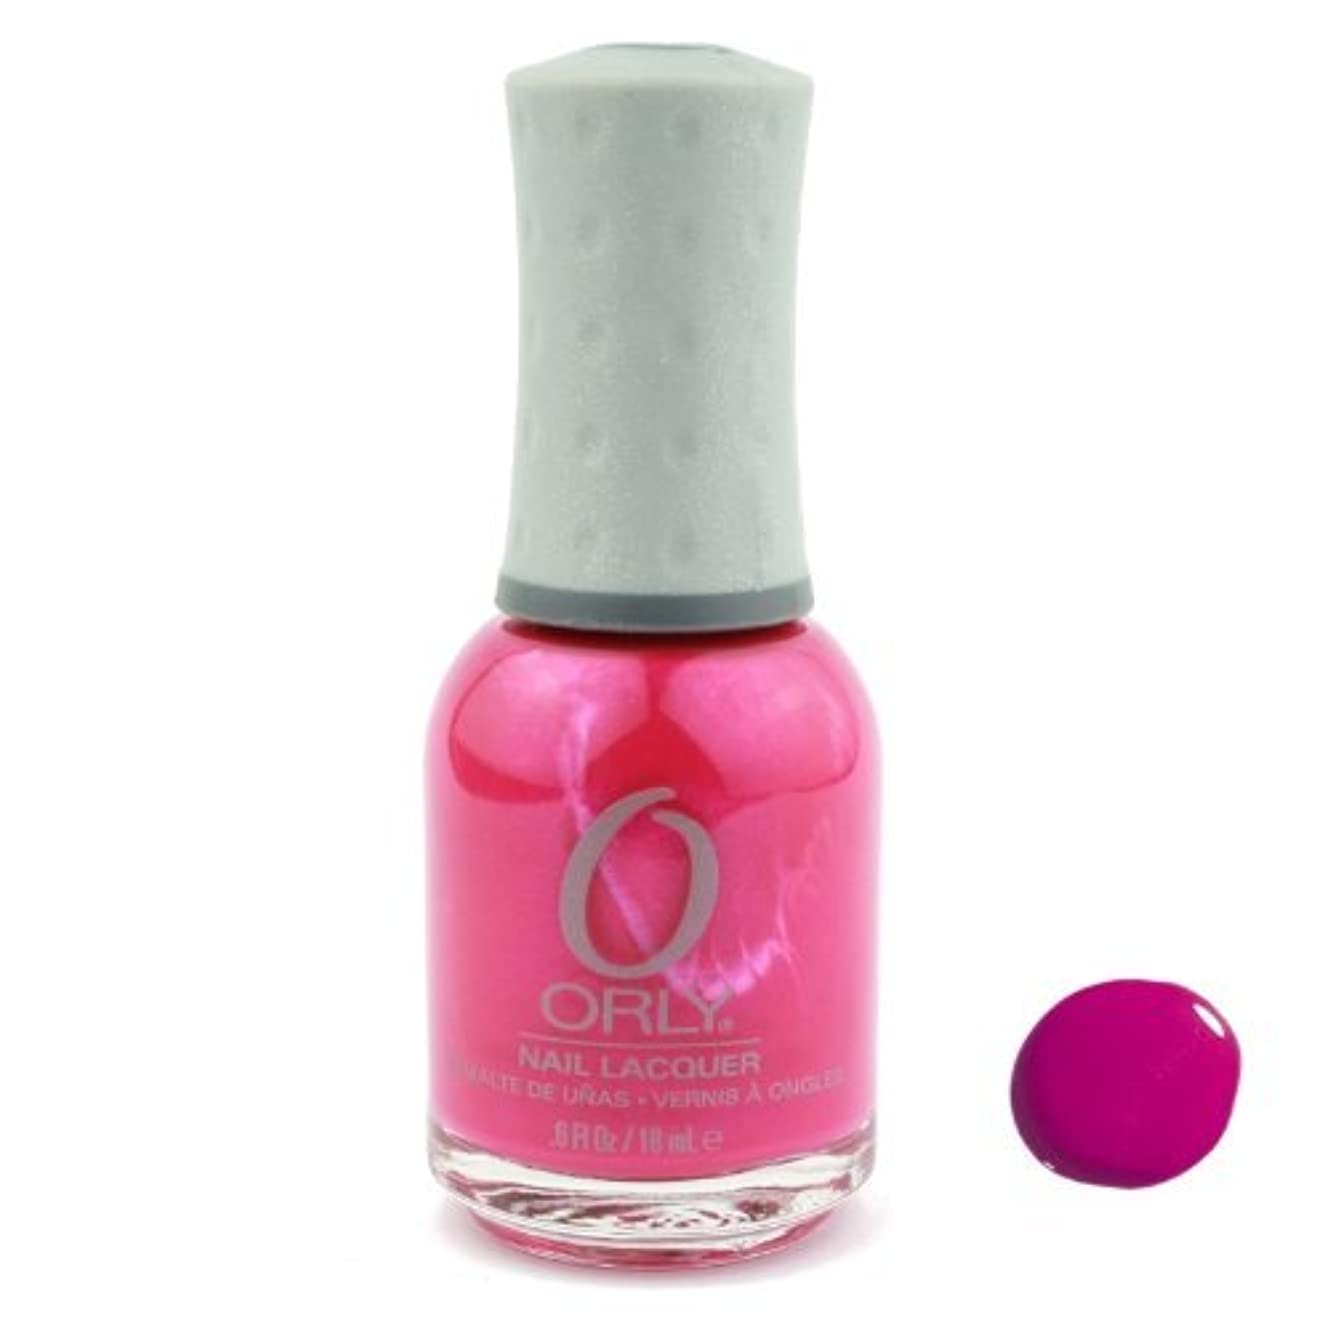 Orly Nail Lacquer - Hawaiian Punch - 0.6oz / 18ml